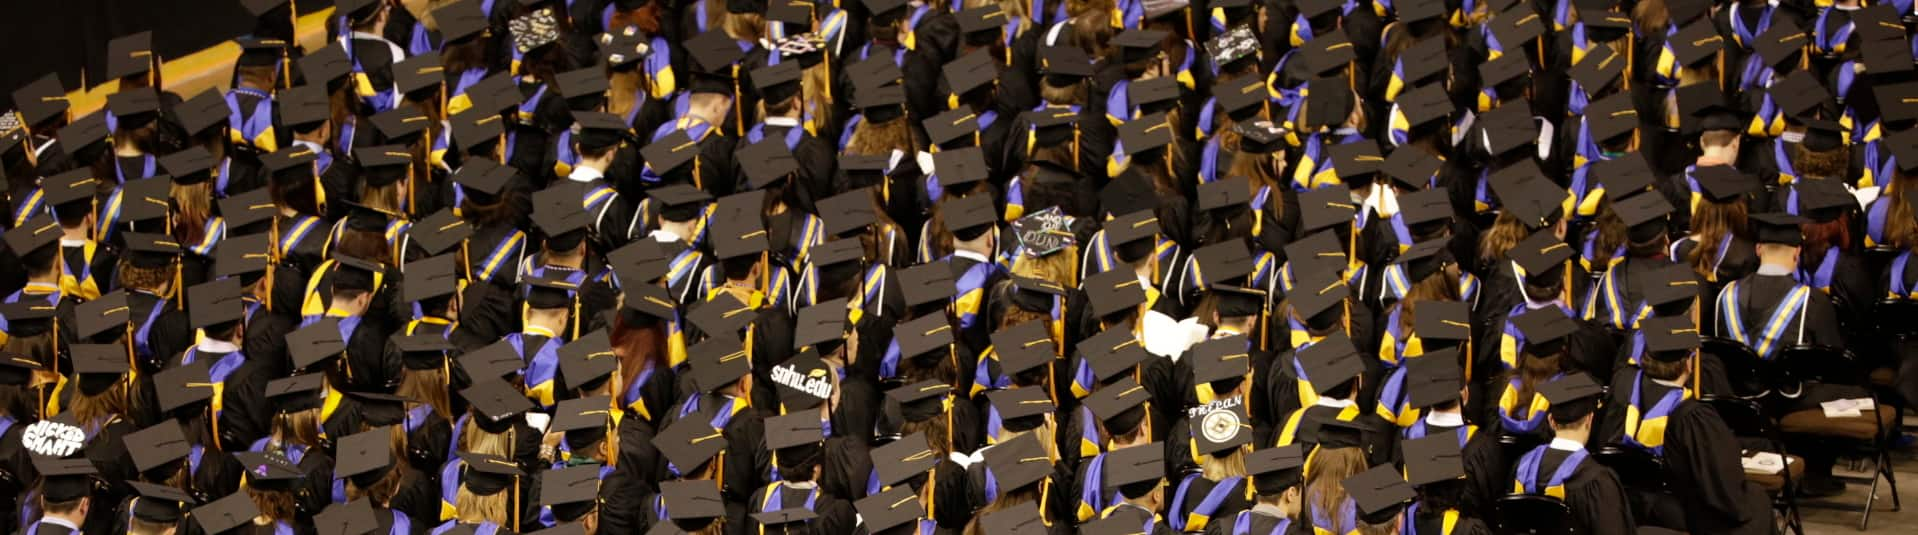 Large group of students wearing caps and gowns at commencement.